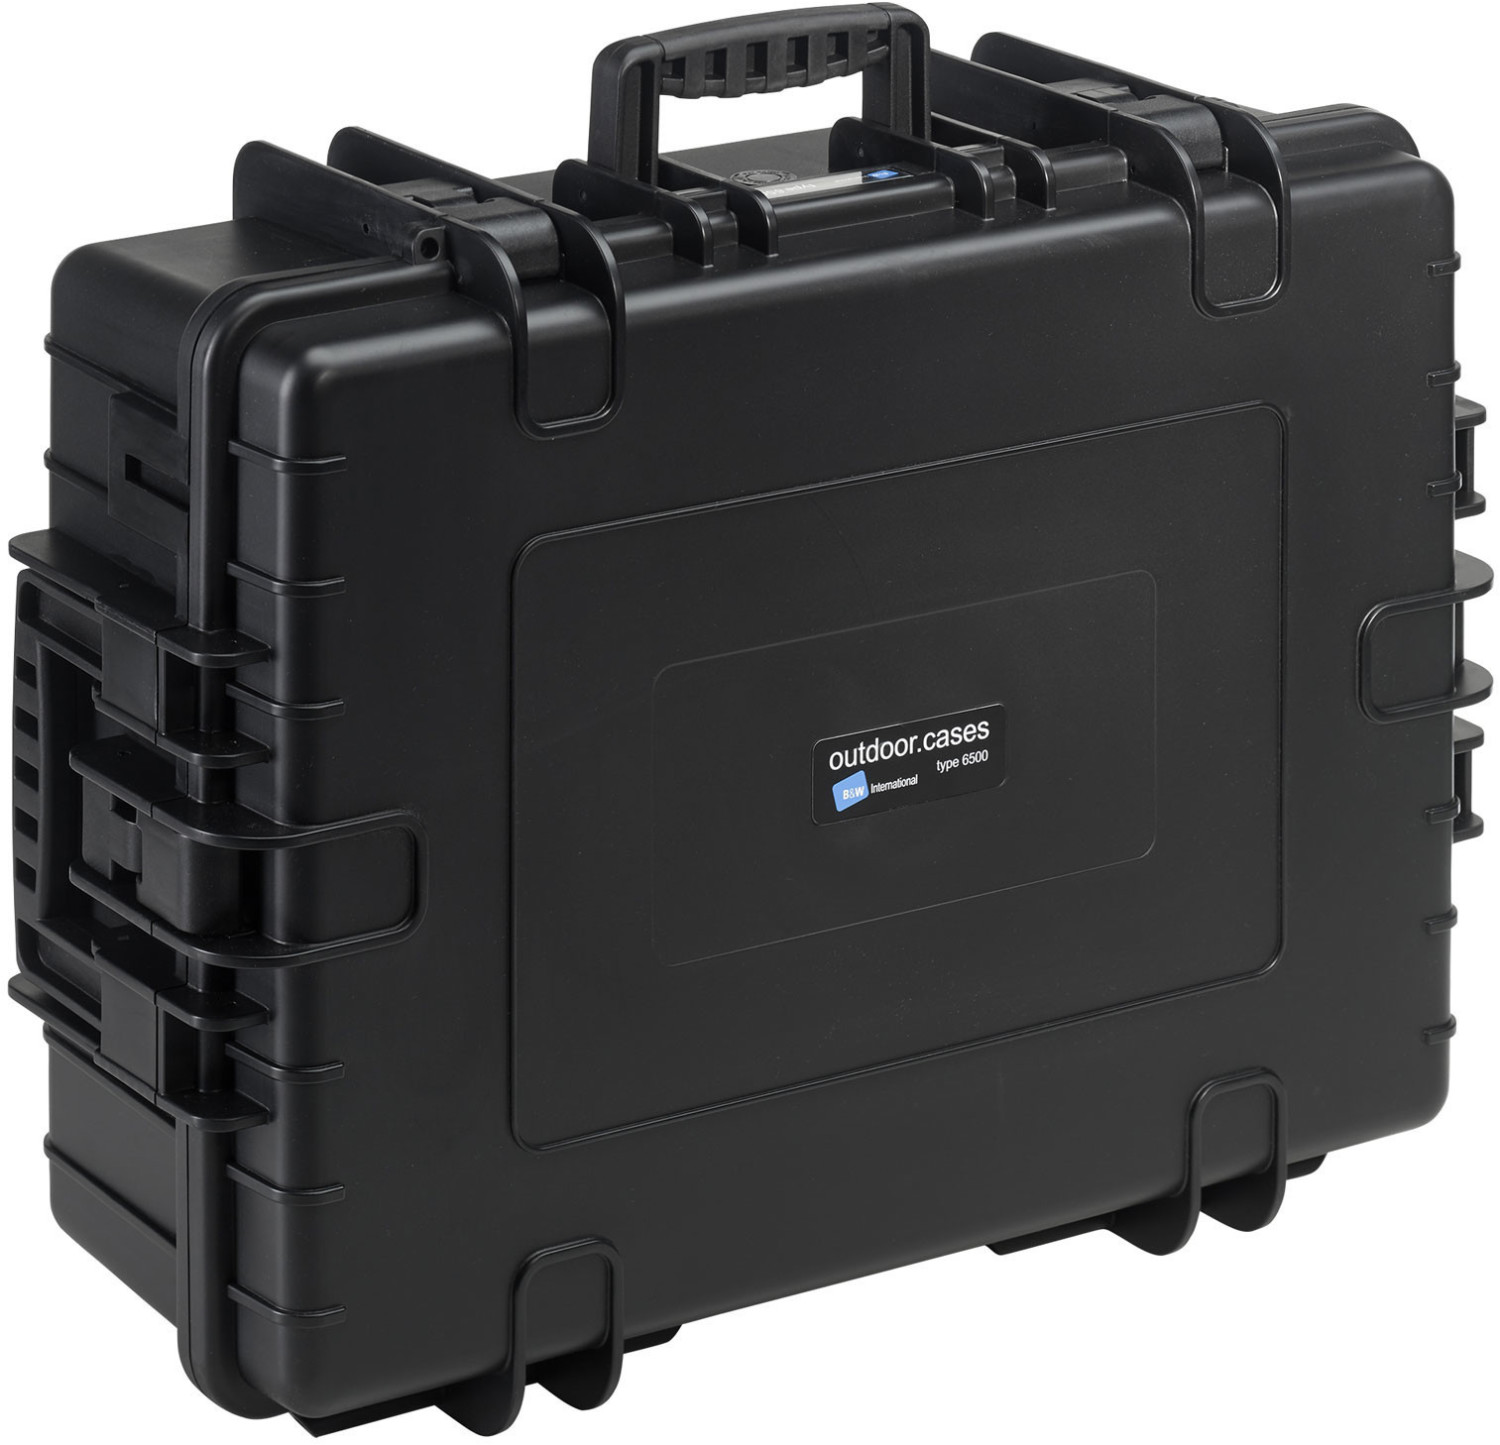 Image of B&W Outdoor Case Typ 6500 incl. SI Black